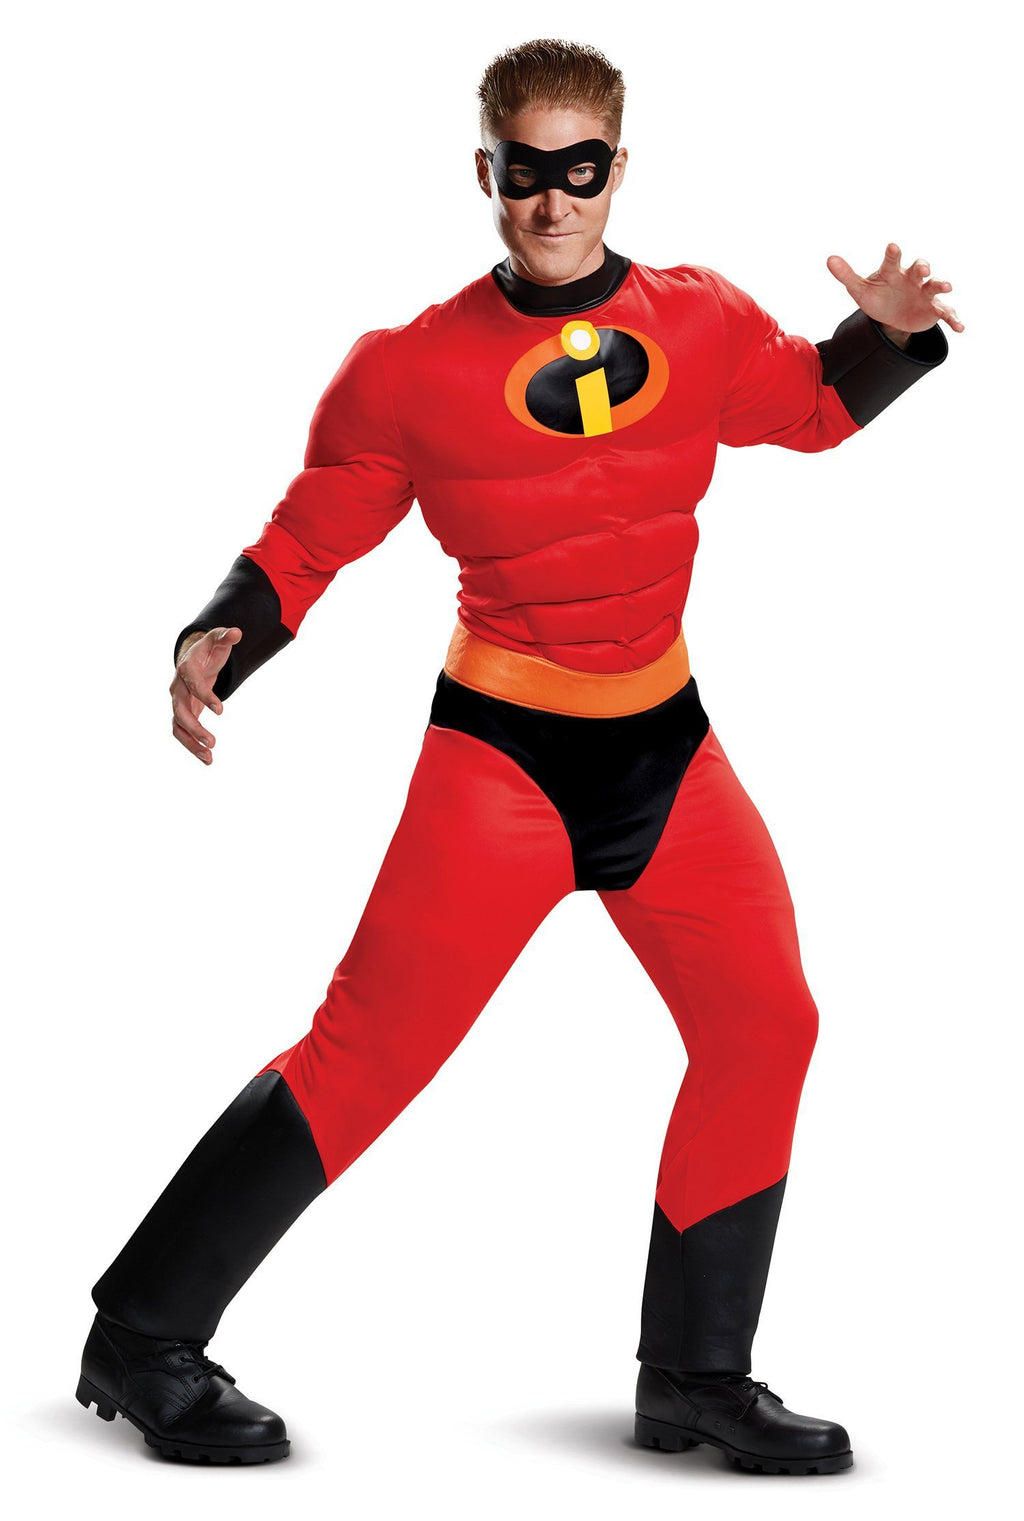 Disguise Costumes X-LARGE (42-46) Mr. Incredible Muscle Costume - The Incredibles